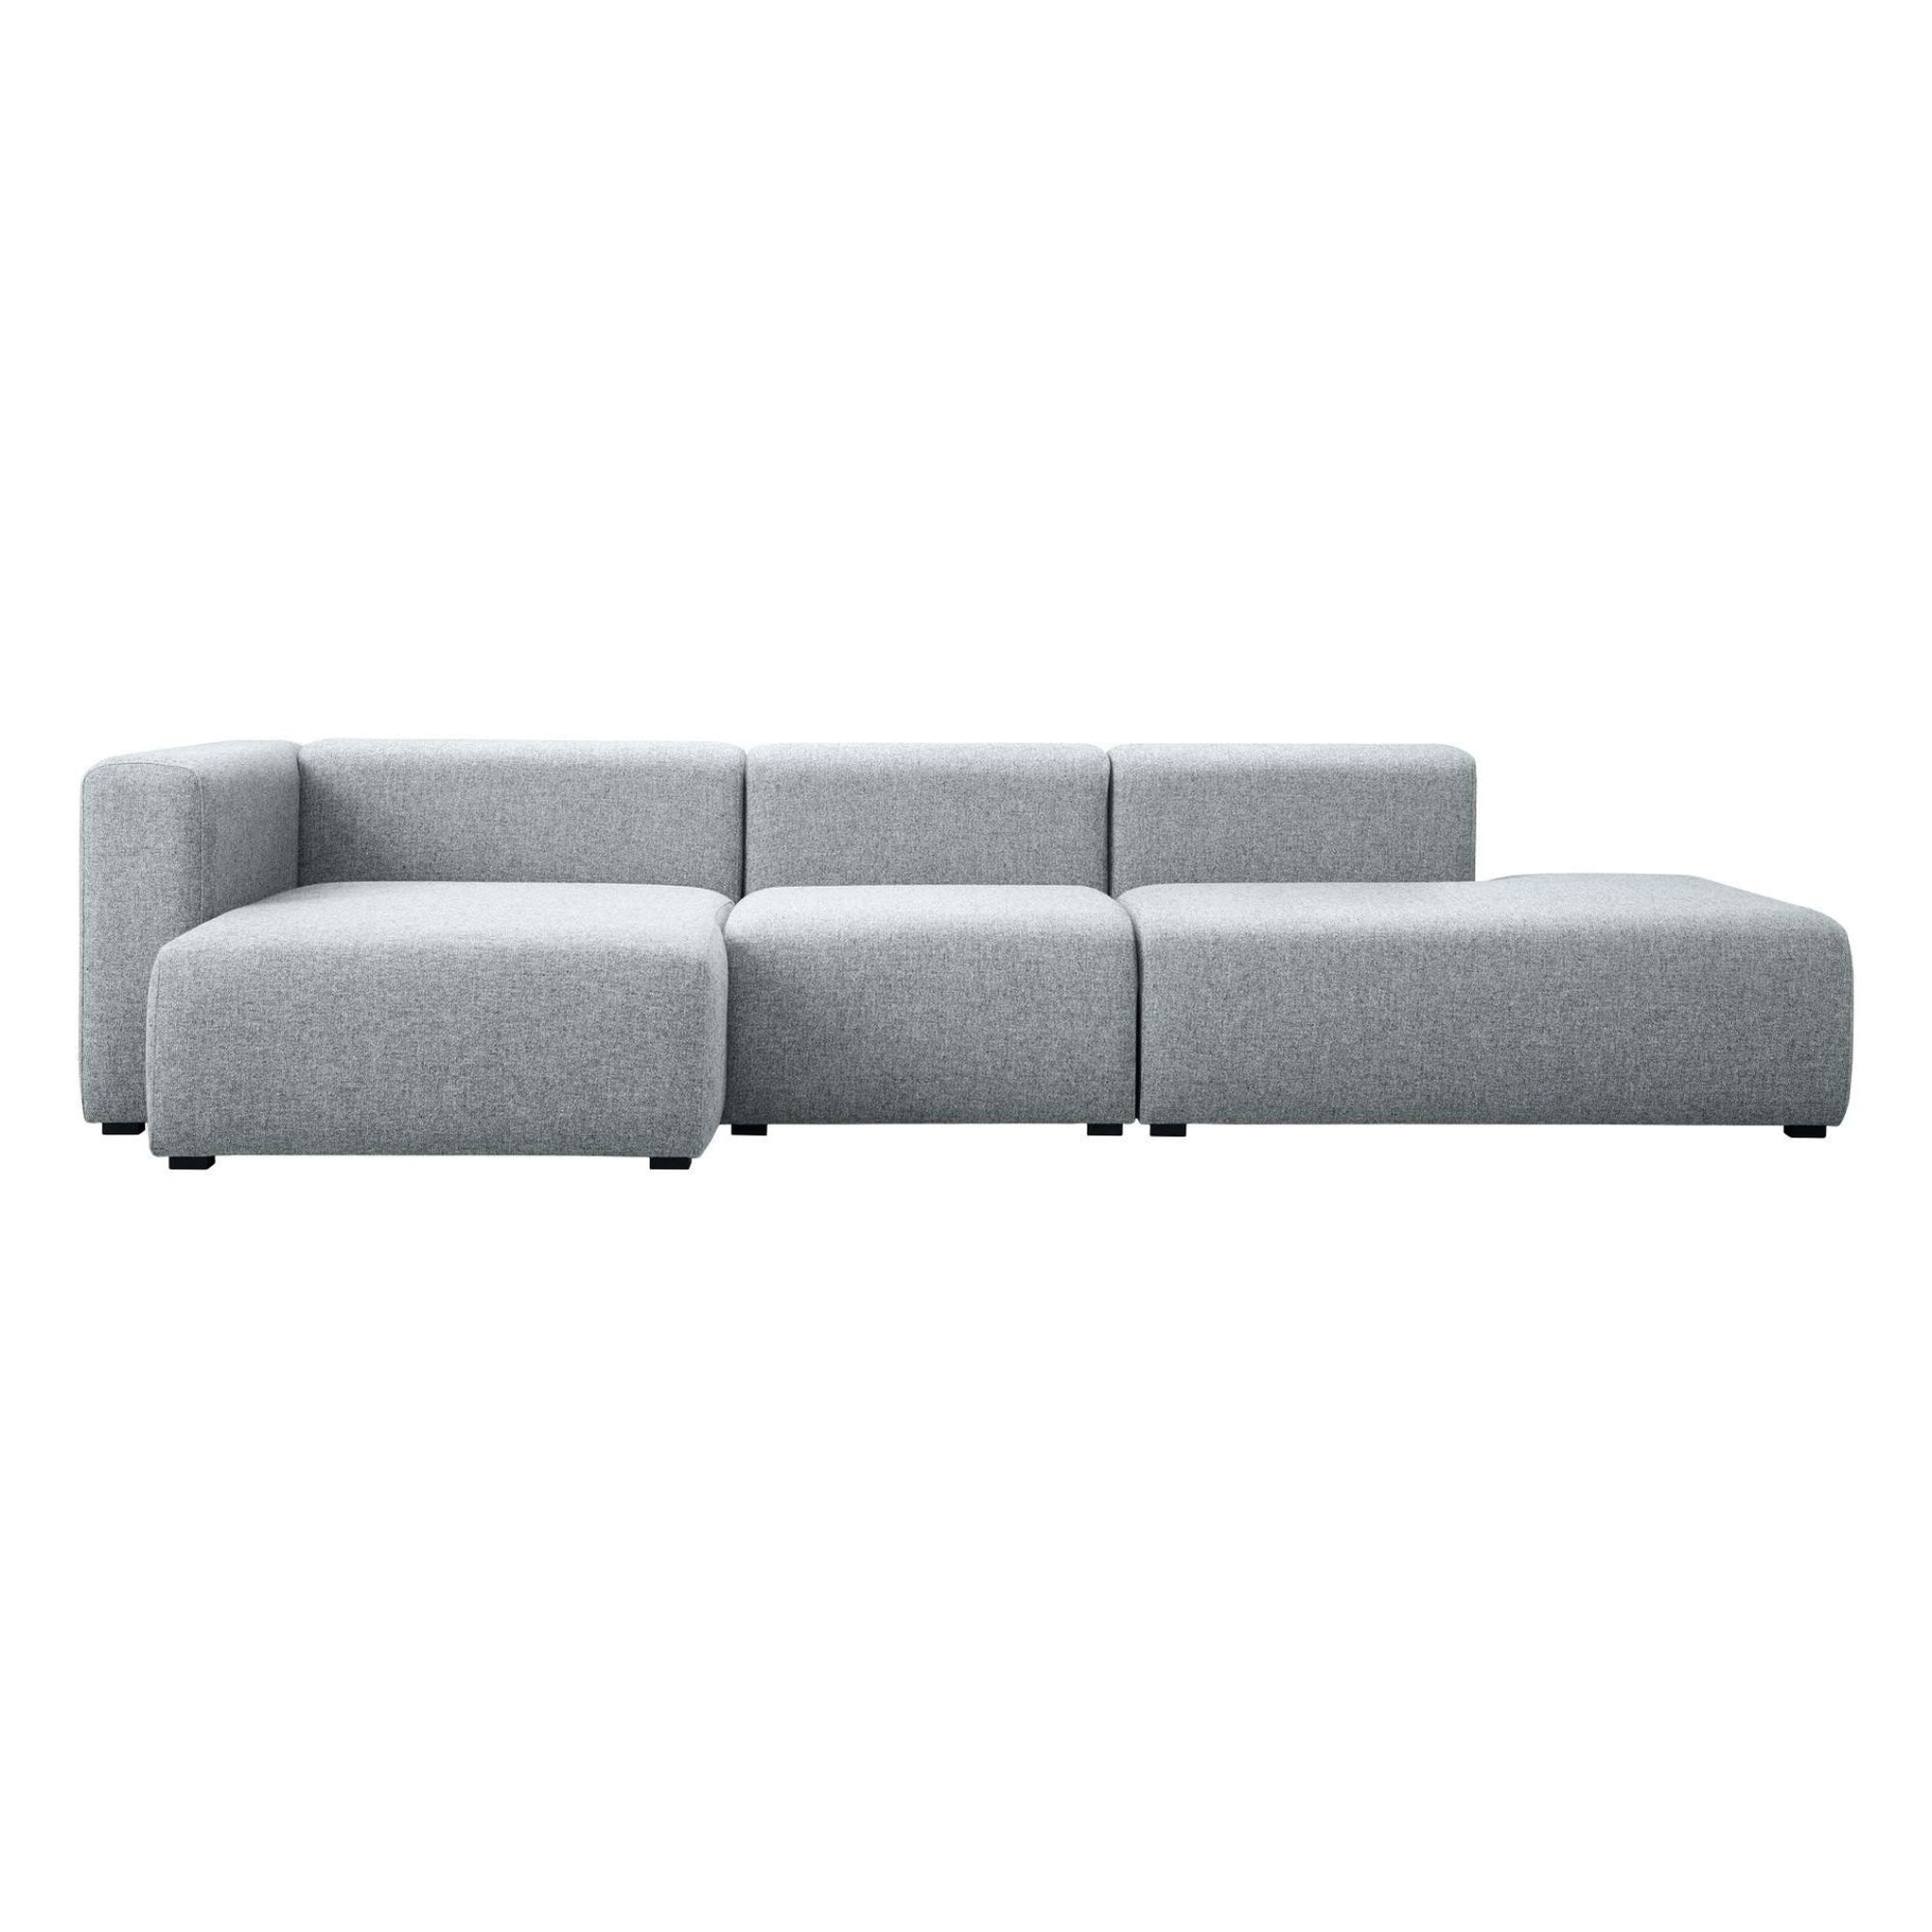 Hay Mags 3 seater loungee sofa, hallingdal 130